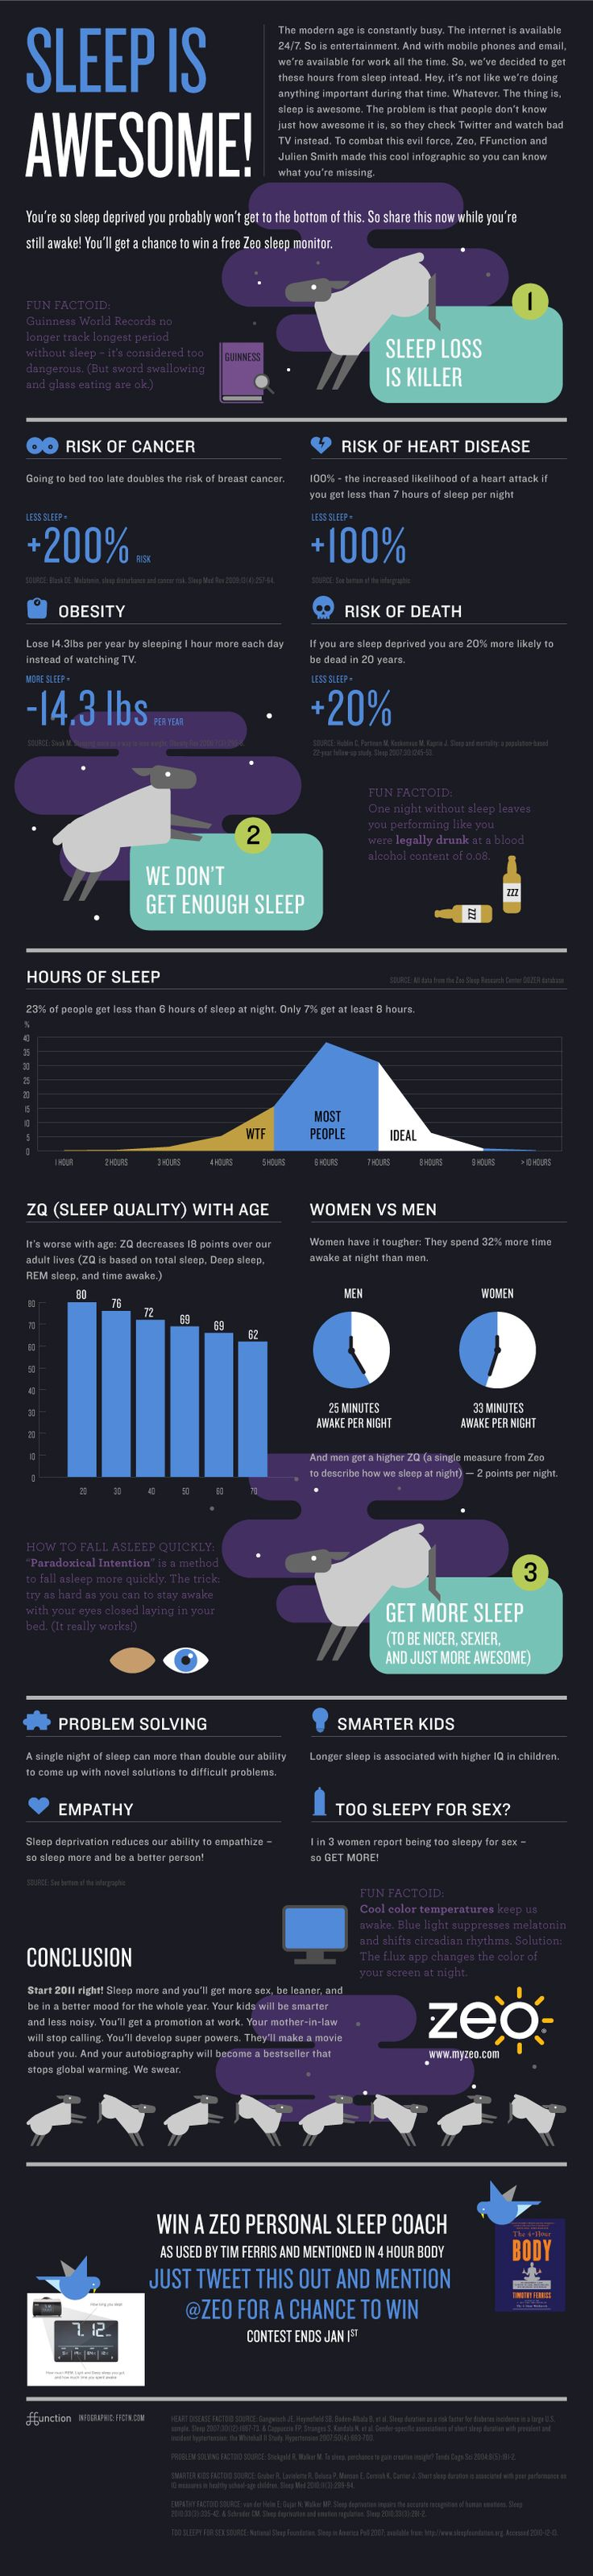 why sleep is so important! Cool infographic!